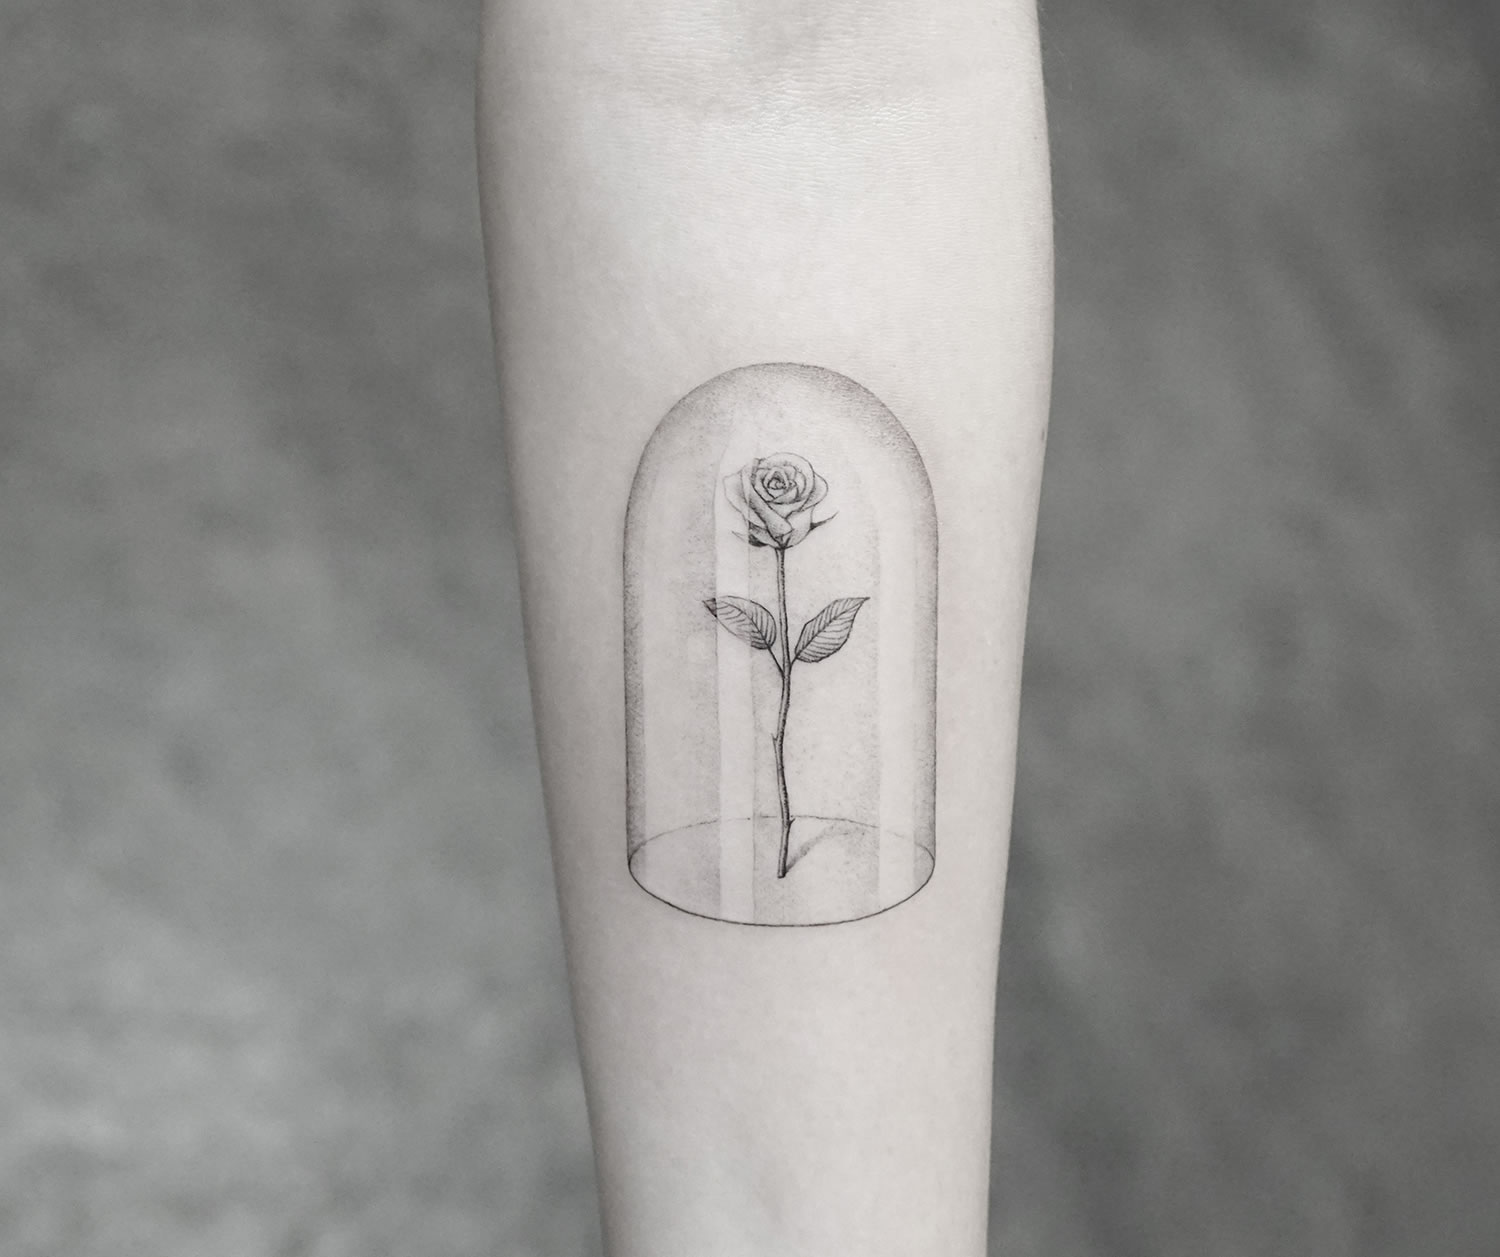 rose in a glass dome, tattoo by mr k, micro design